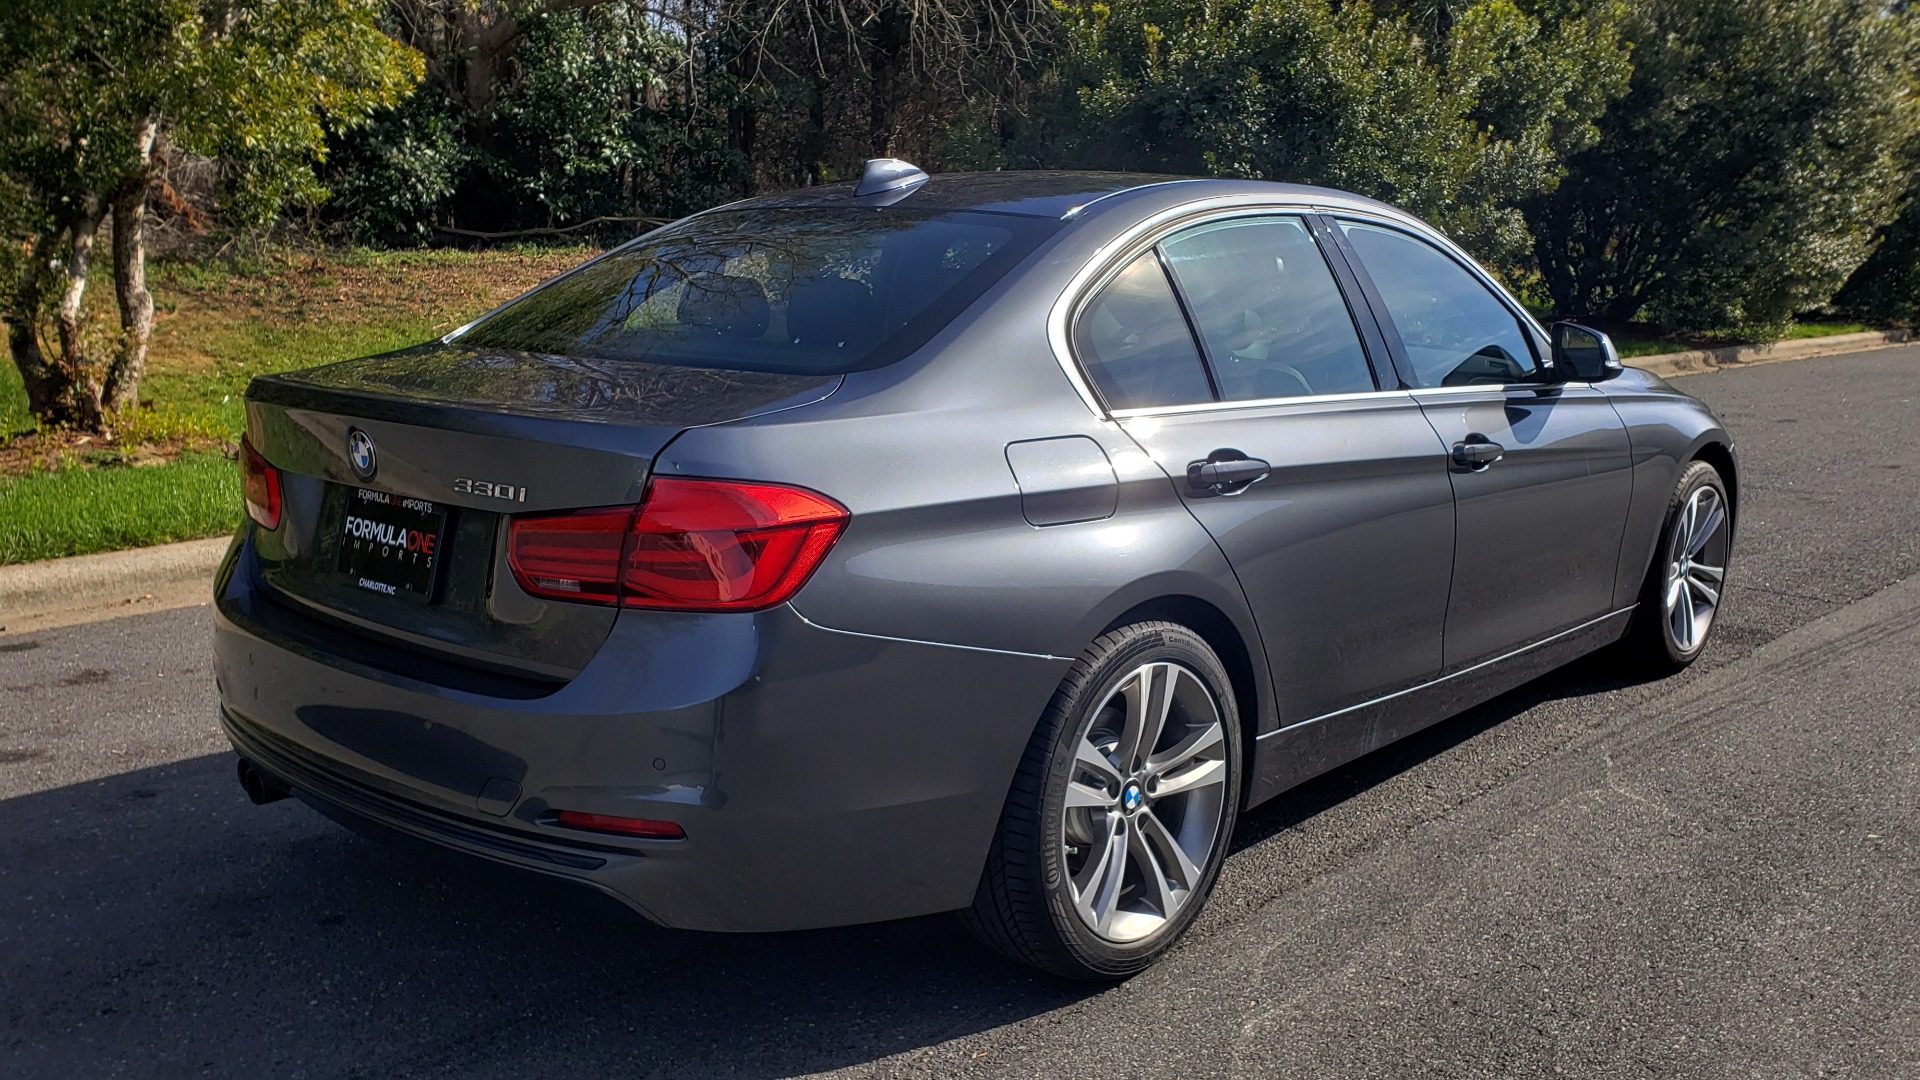 Used 2017 BMW 3 SERIES 330I PREMIUM / DRVR ASST / NAV / SUNROOF / HTD STS / REARVIEW for sale Sold at Formula Imports in Charlotte NC 28227 6